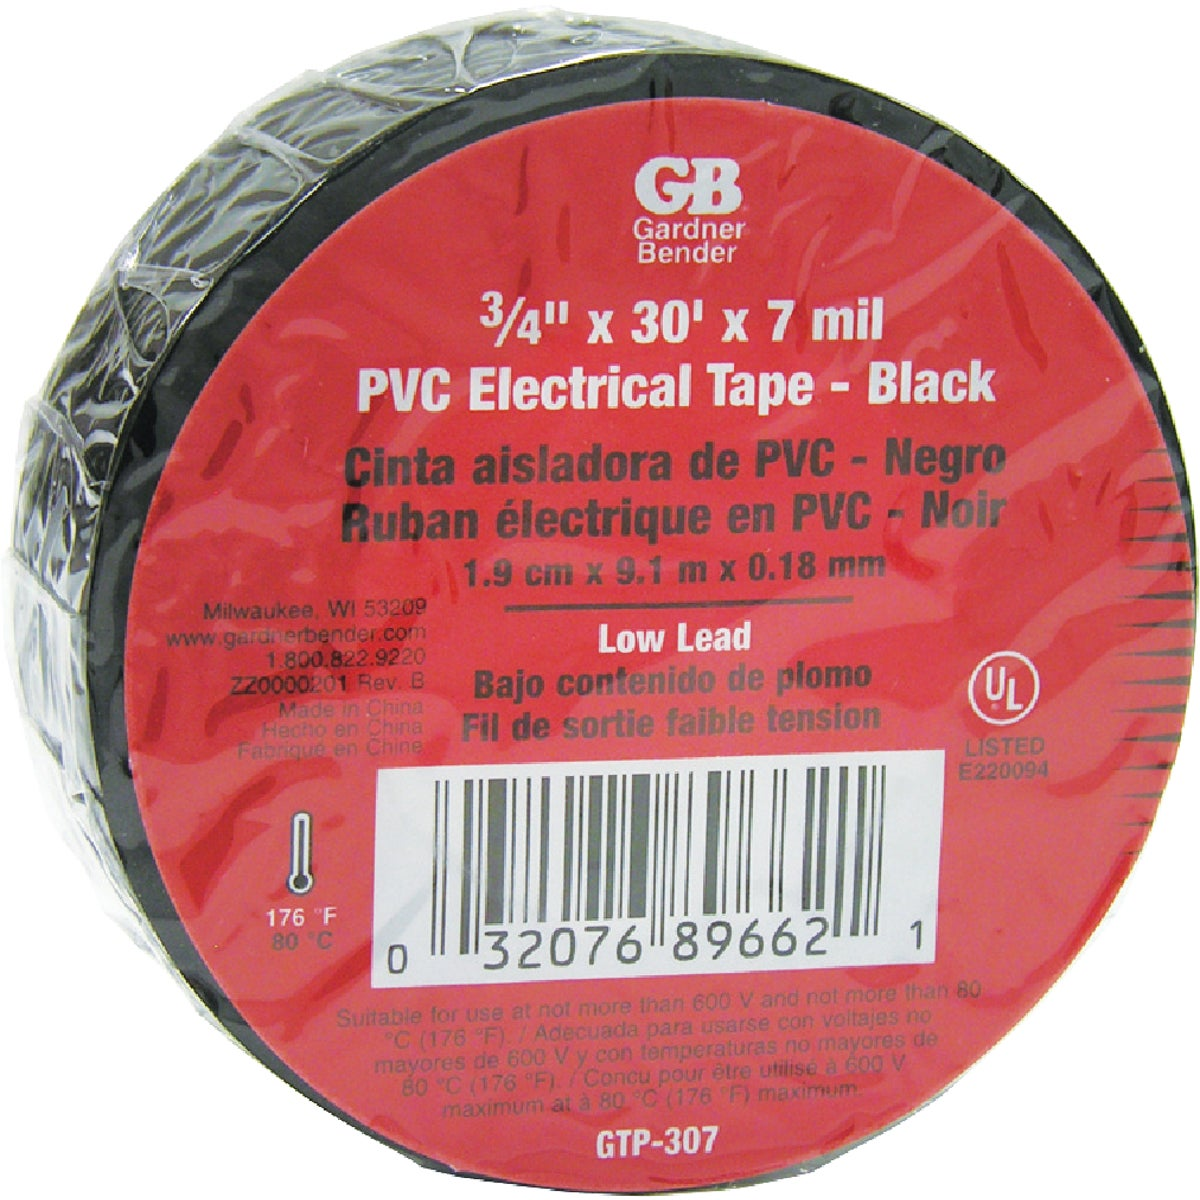 10PK ELECTRICAL TAPE - GTP-307 by G B Electrical Inc